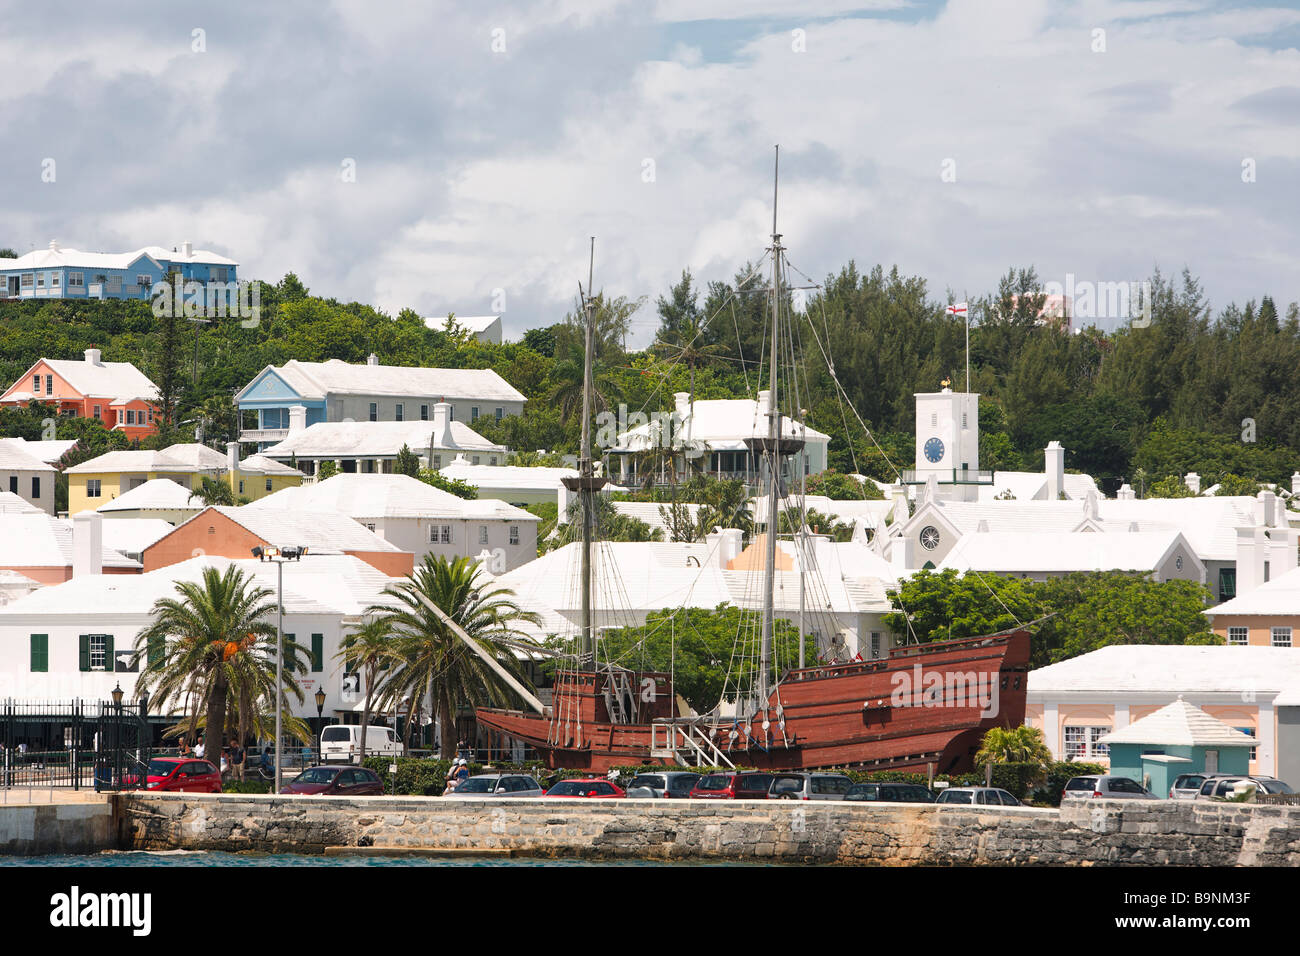 View of The Houses of St George from The Harbor Bermuda - Stock Image